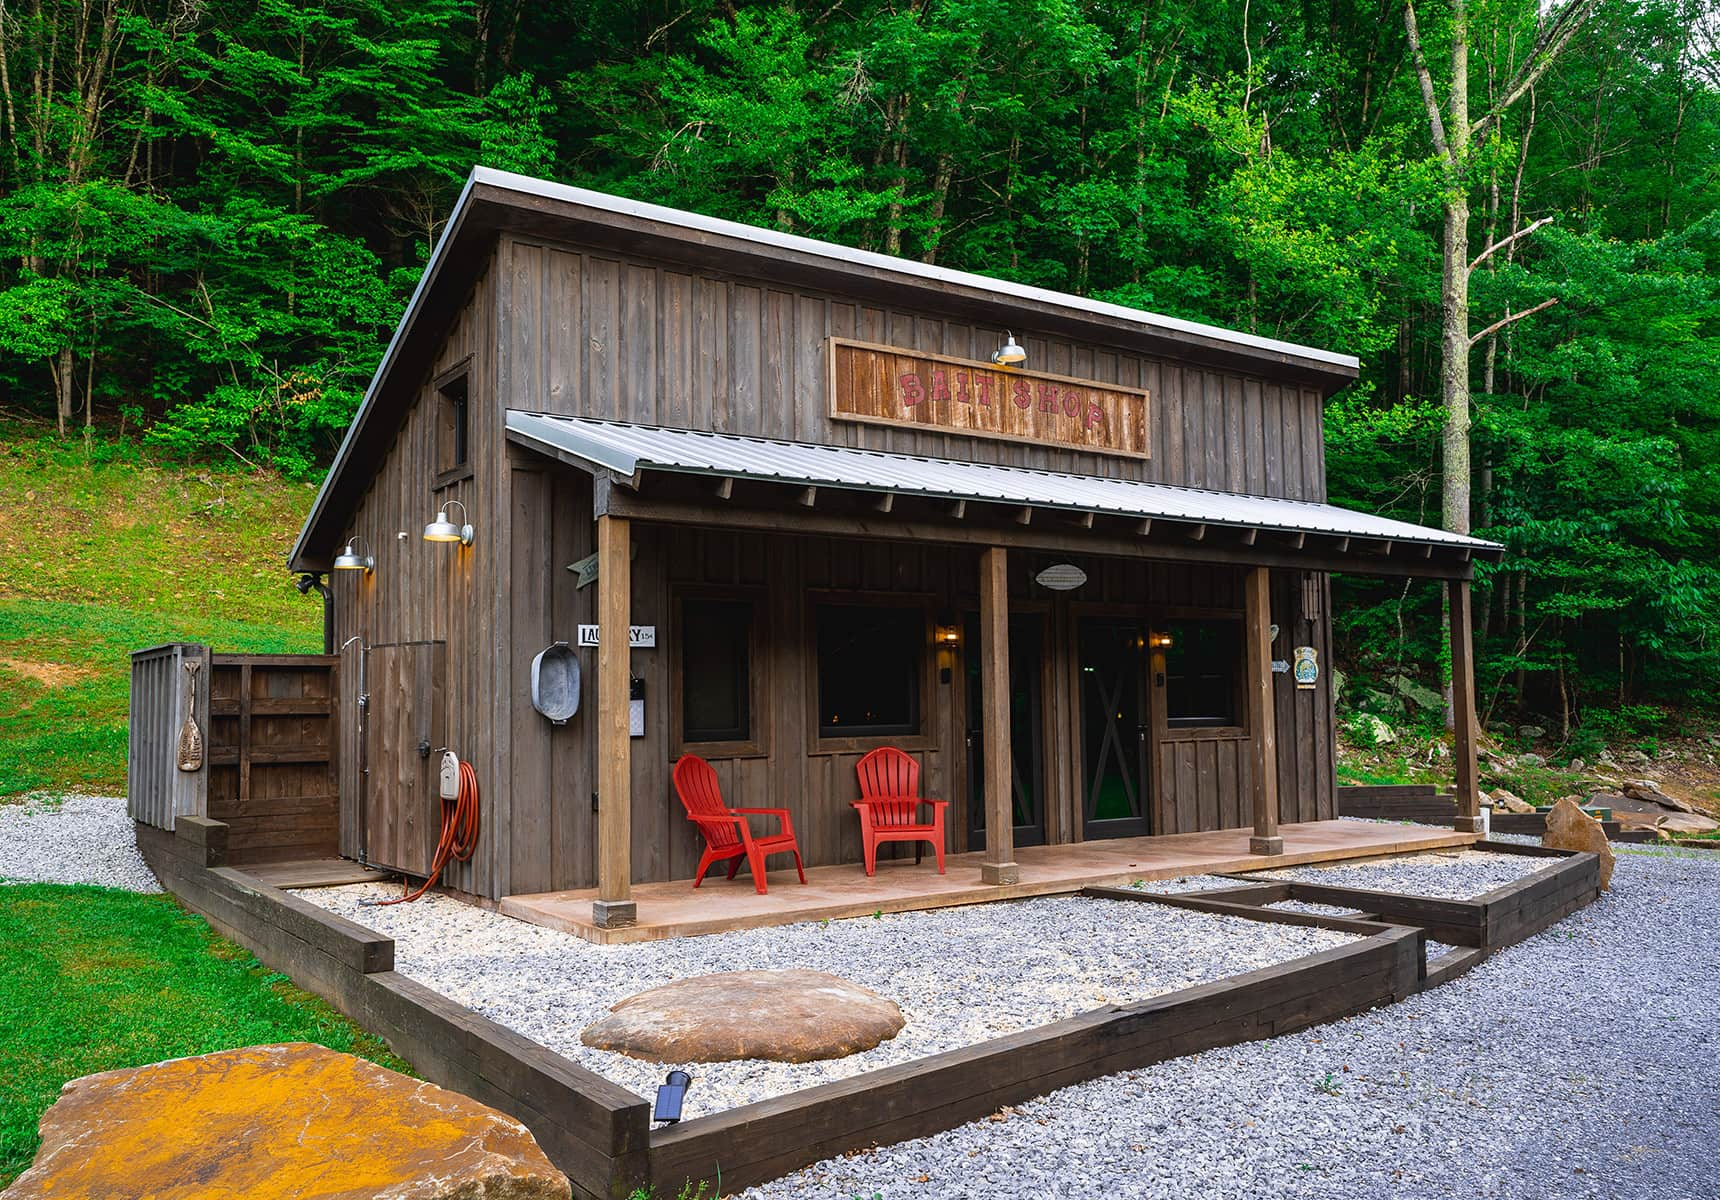 Exterior front view of the Baitshop Cabin with a gravel landing area and an outdoor shower